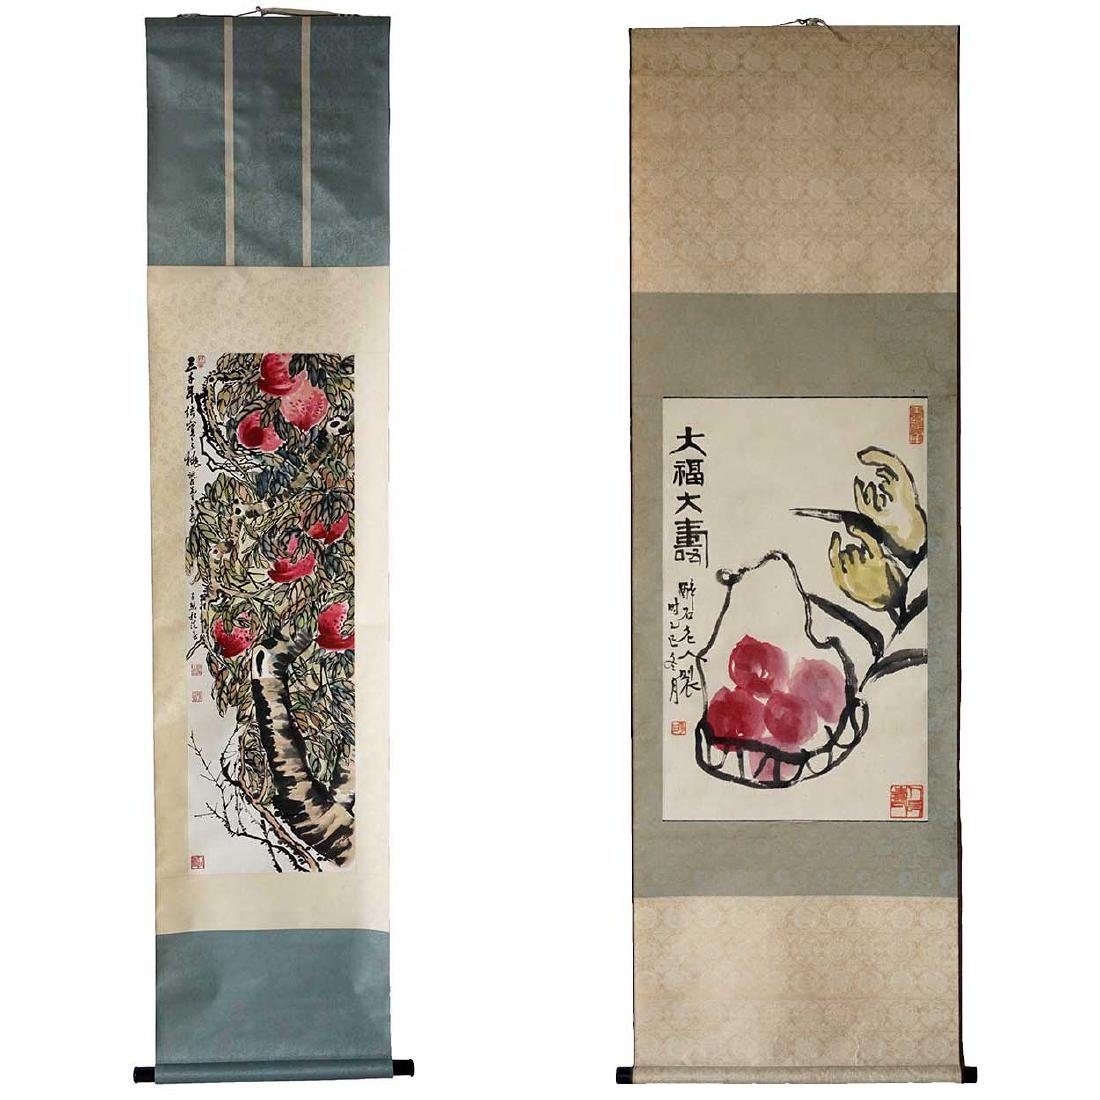 2 Vintage Japanese Vertical Scroll Paintings of Fruit